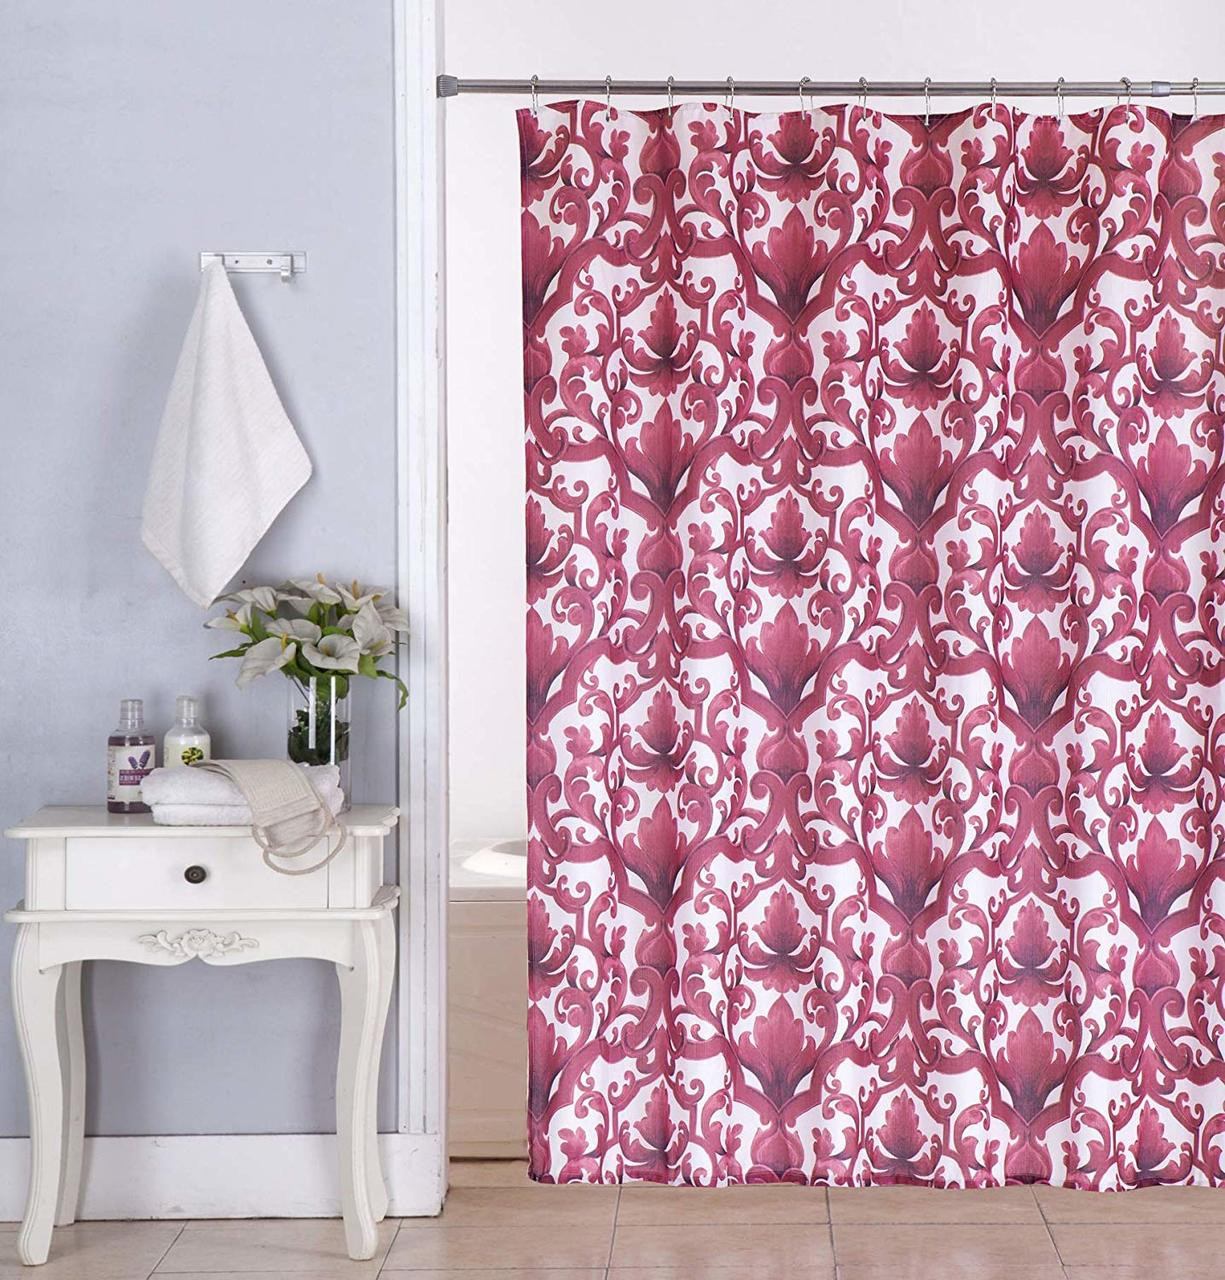 Ariel Shower Curtain Kashi Home Ariel 70x70 Inch Canvas Fabric Shower Curtain Scroll Damask Print Burgundy